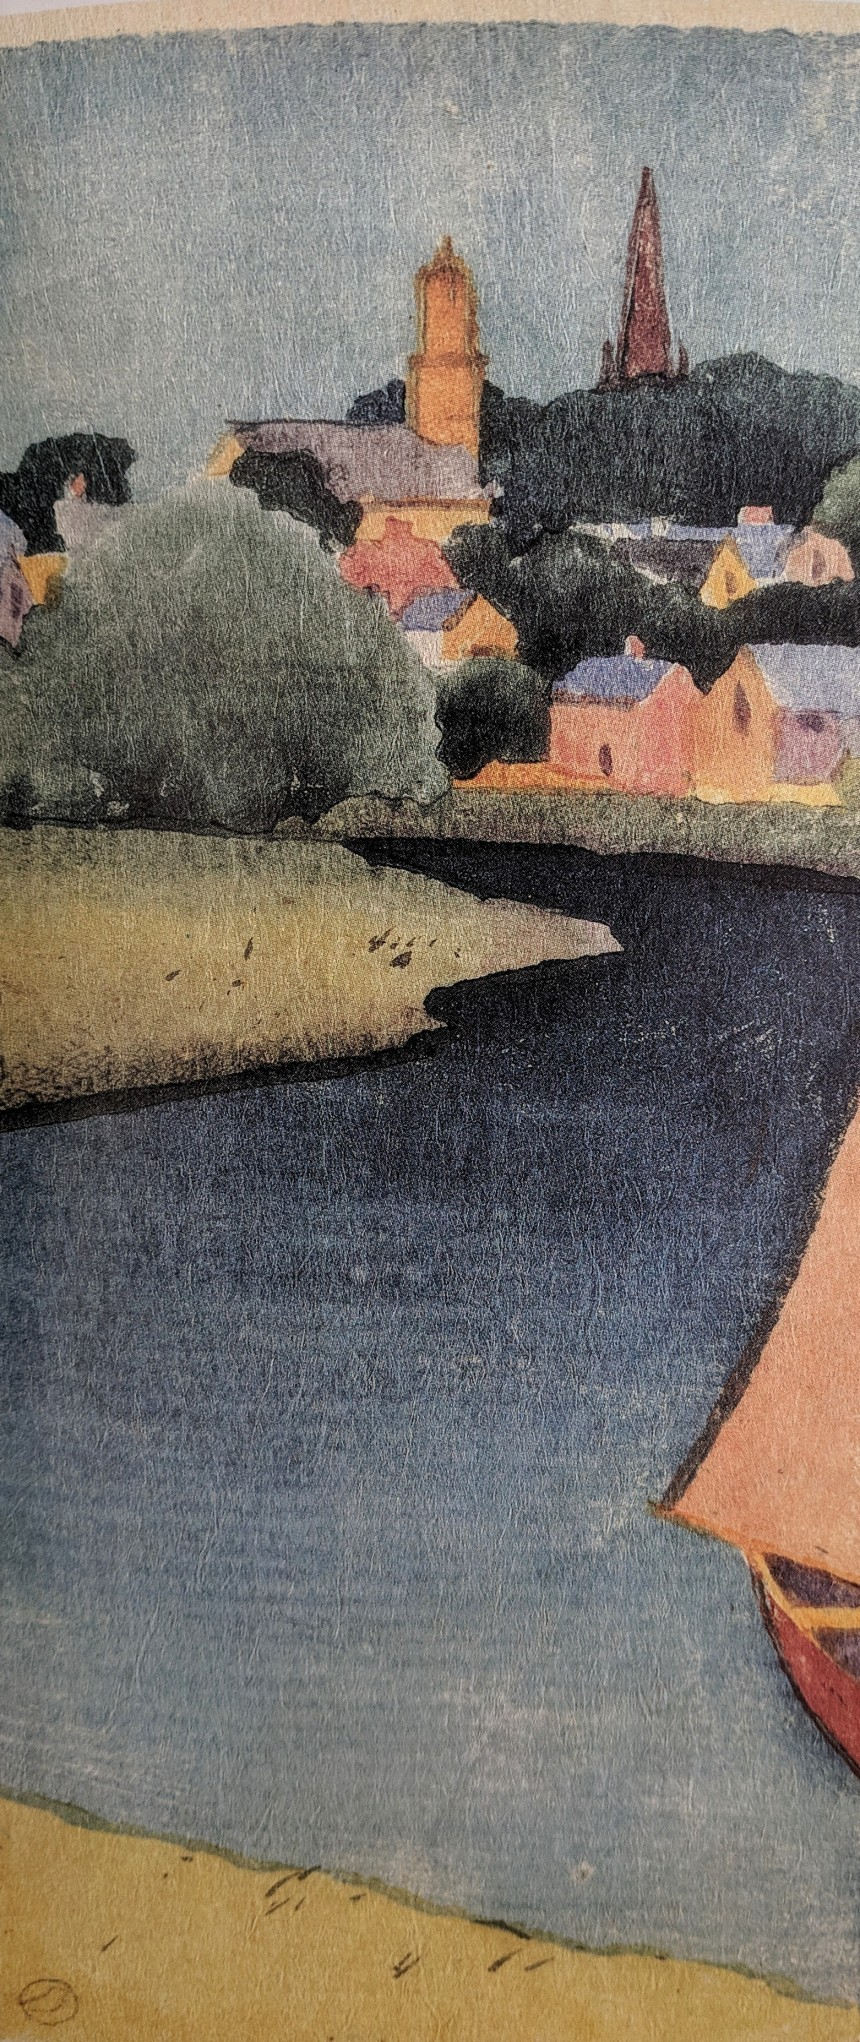 Dow detail view in ipswich color woodblock print